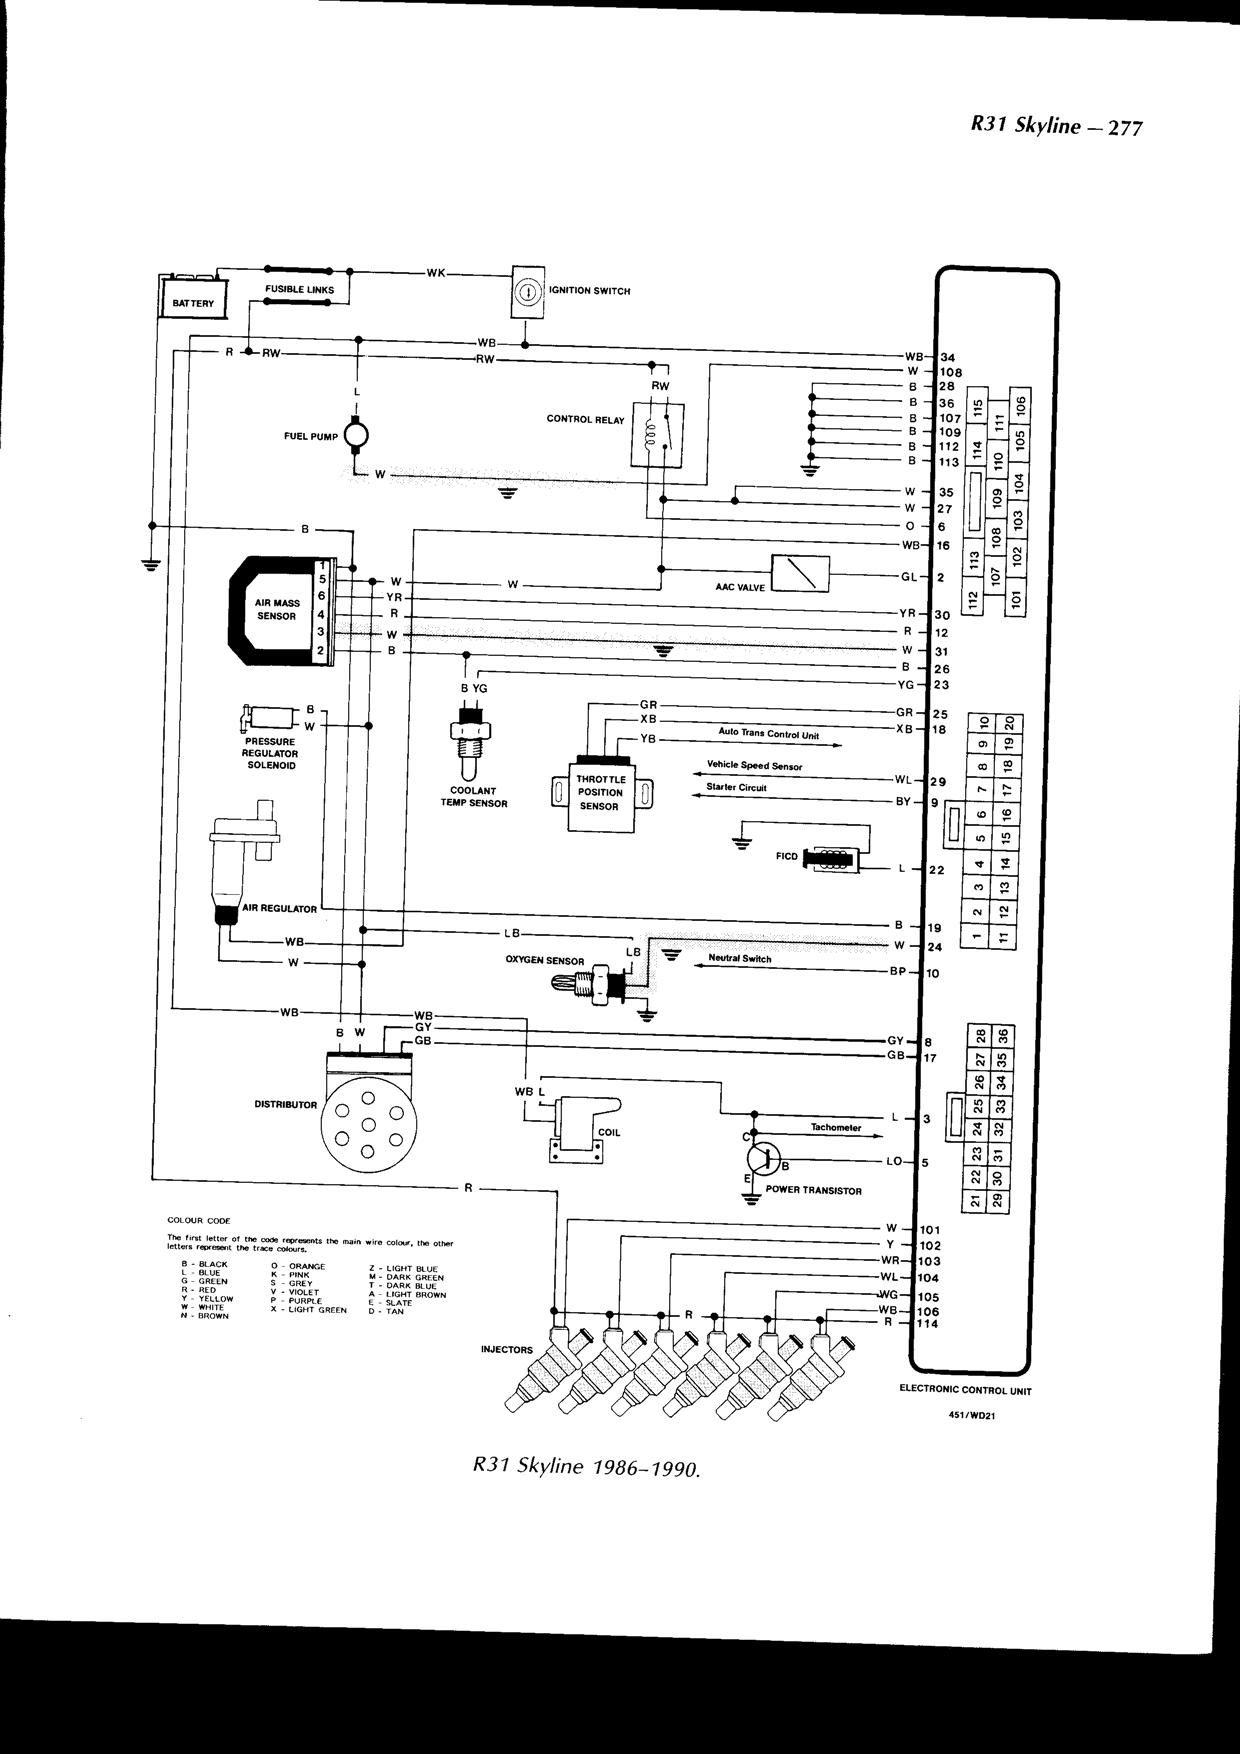 nissan 1400 electrical wiring diagram nissan pinterest nissan 1970 datsun 240z nissan 1400 electrical wiring diagram